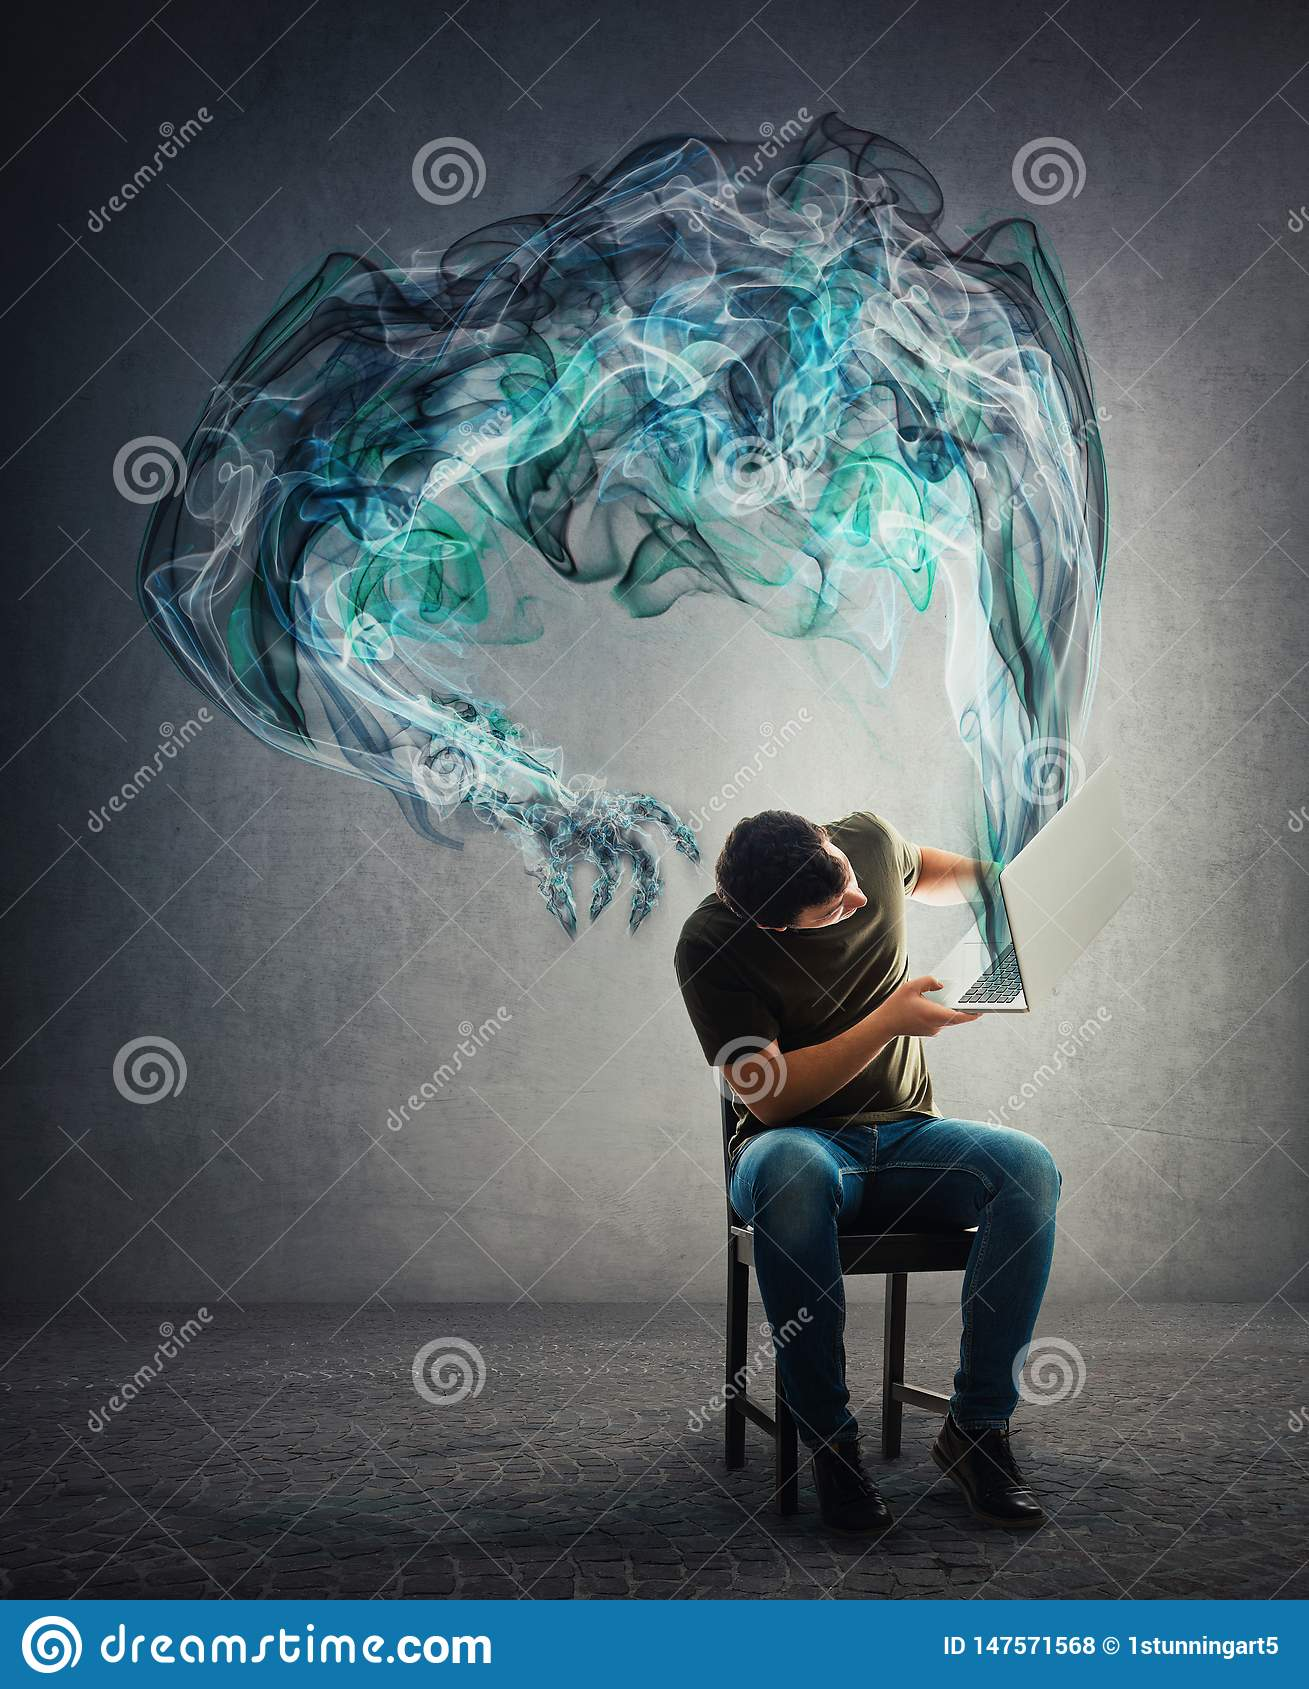 Perplexed guy seated lifting his laptop looking to fix problems as dark smog hand comes out of notebook